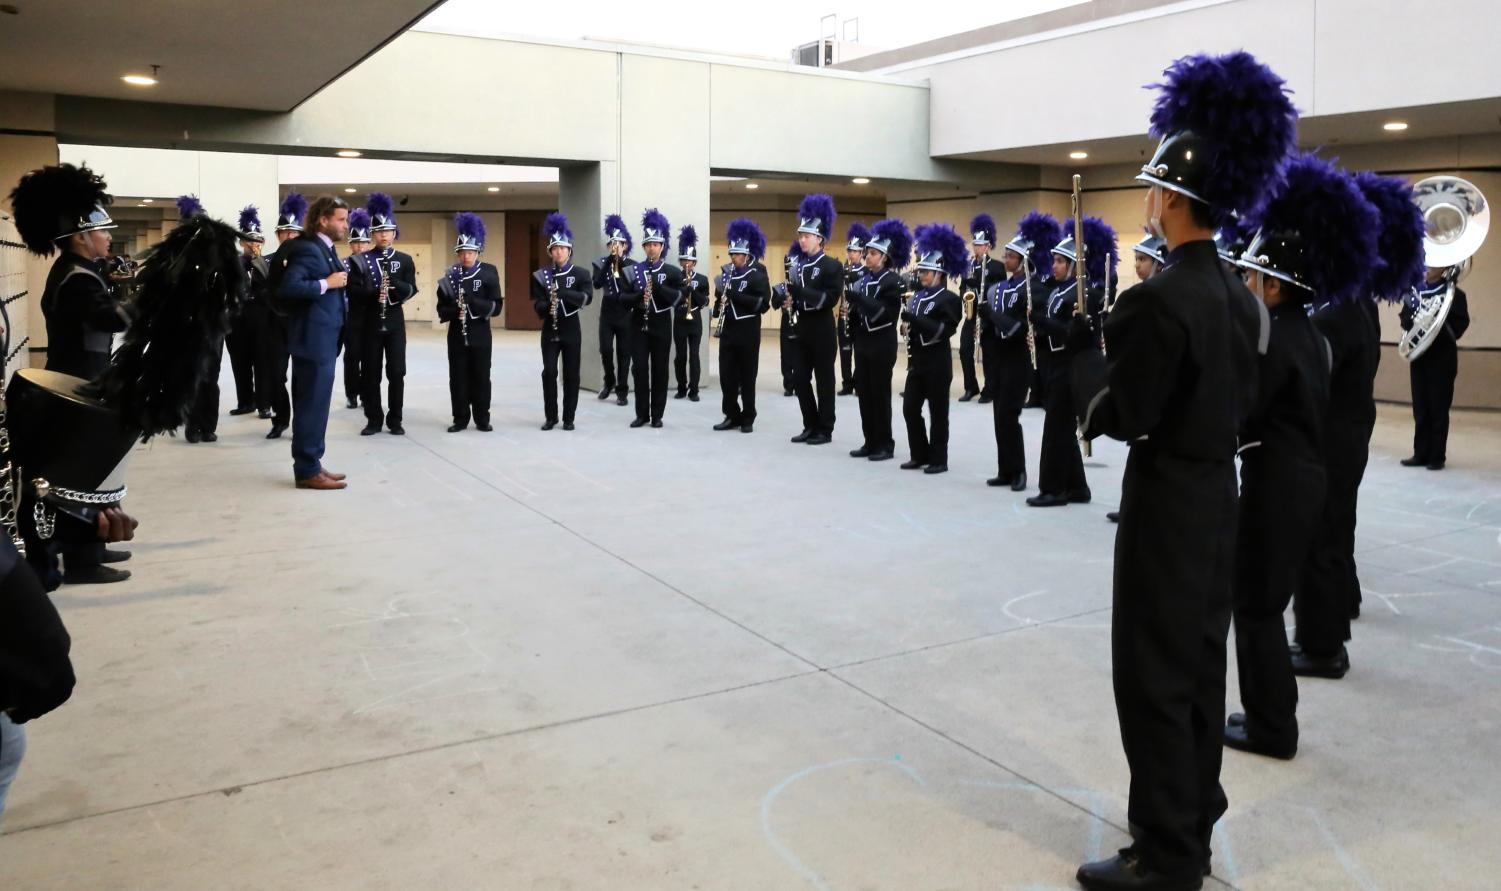 The marching band gets their final words of encouragement from teacher Desmond Stevens before embarking on their field show at the Tesoro Marching Band Field Tournament